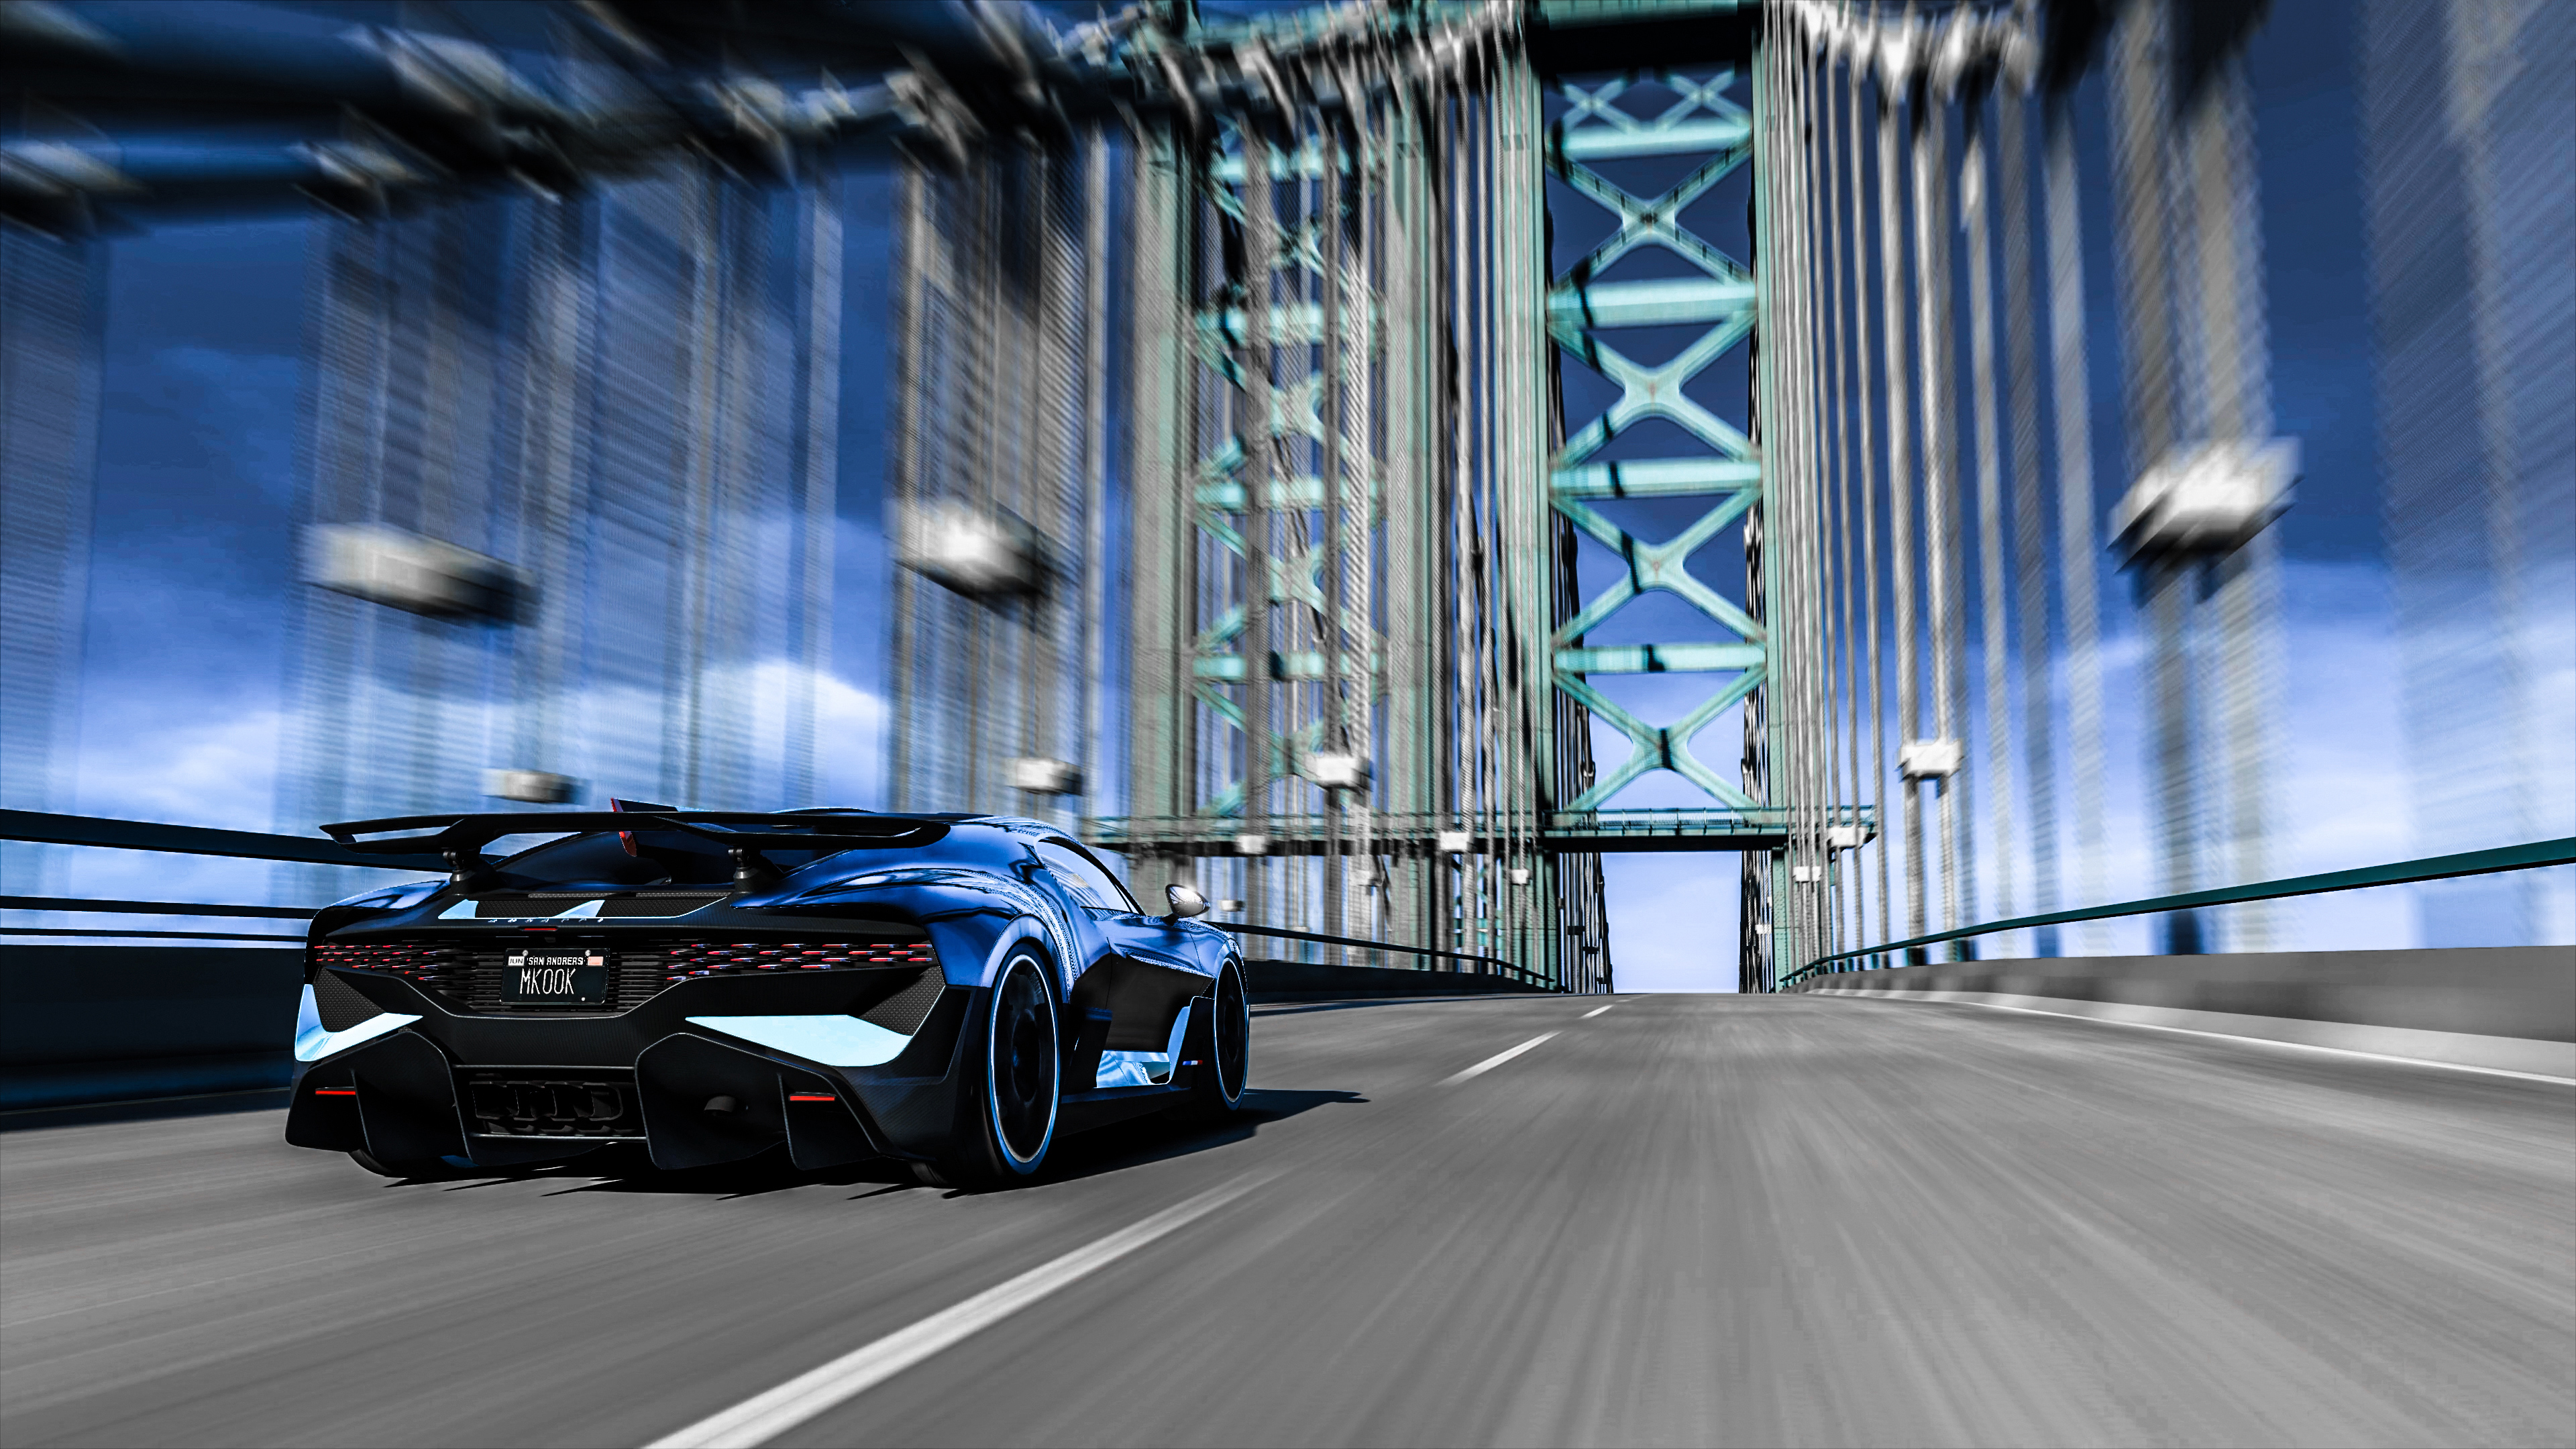 Gta V Bugatti Divo On Highway Hd Games 4k Wallpapers